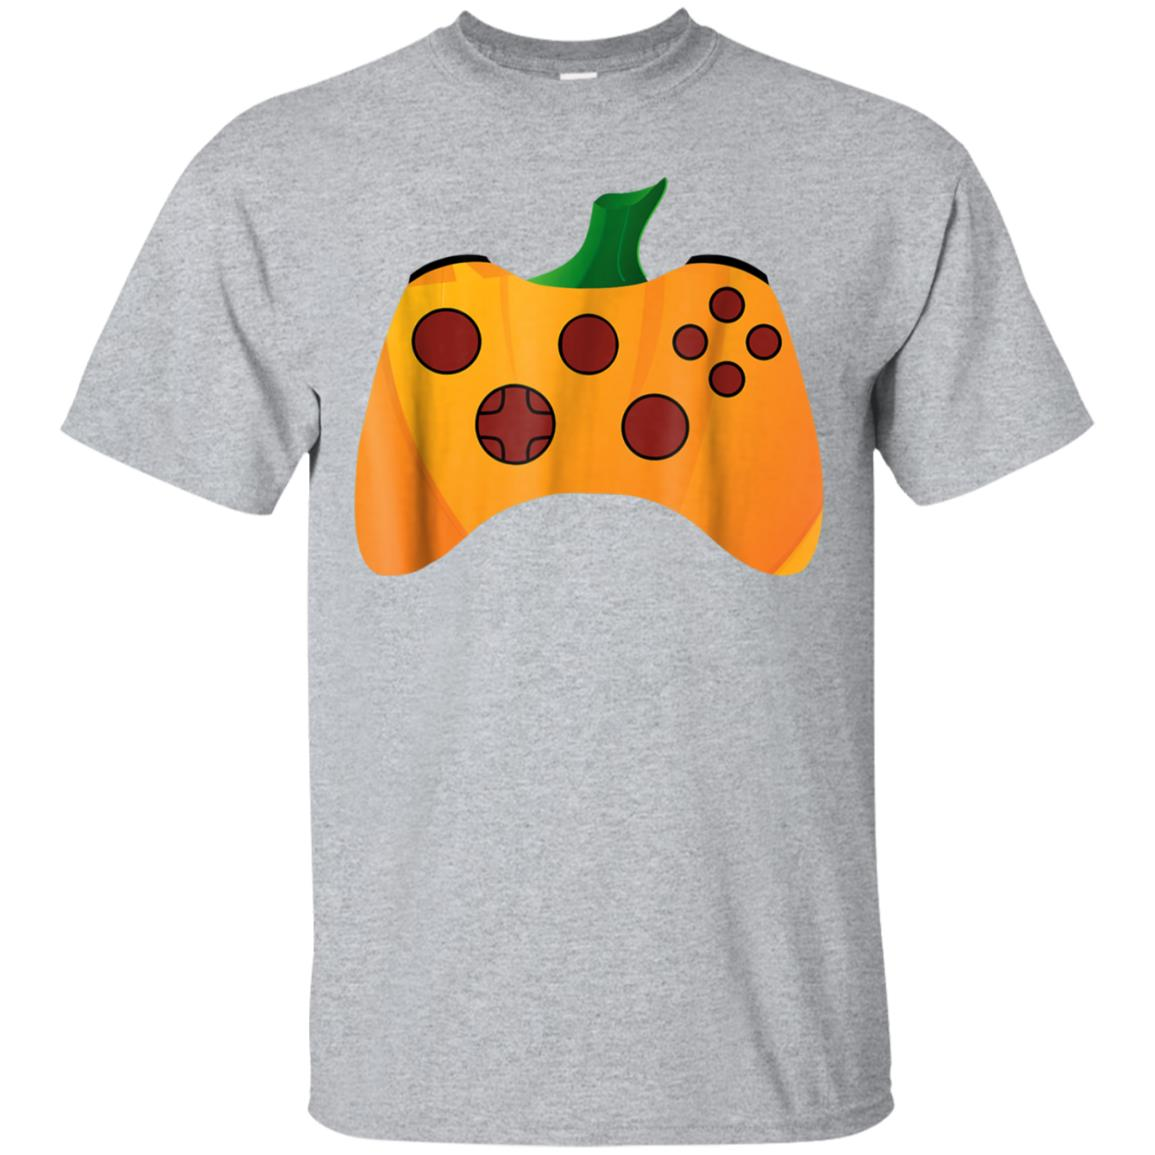 Video Gamer Halloween Shirt Funny Pumpkin Costume TShirt 99promocode